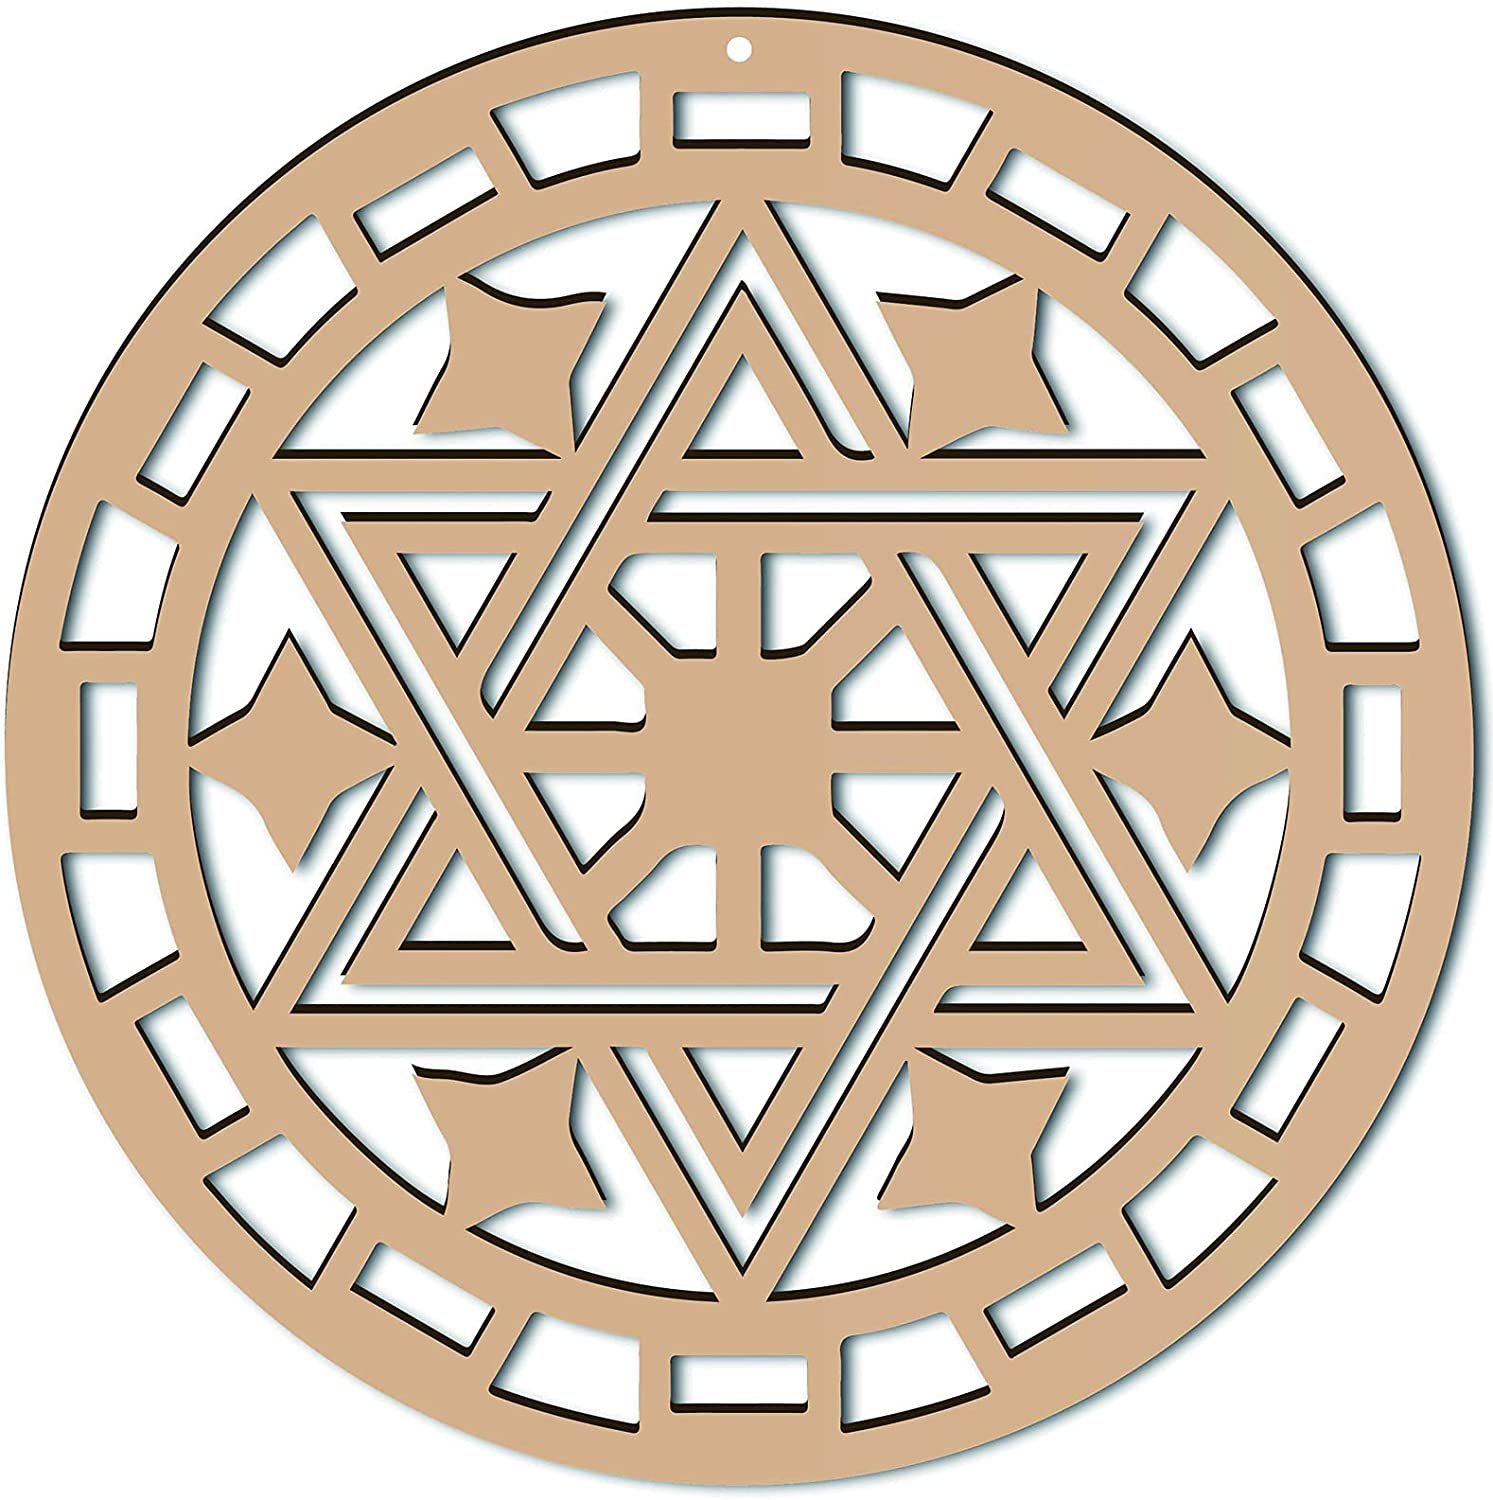 CREATCABIN 12inch Star of David Wall Art Wooden Crystal Grid Sacred Geometry Laser Cut Wall Sculpture Hanging Decor Spiritual Symbol Flat Round for Home Office Yoga Studio Decoration